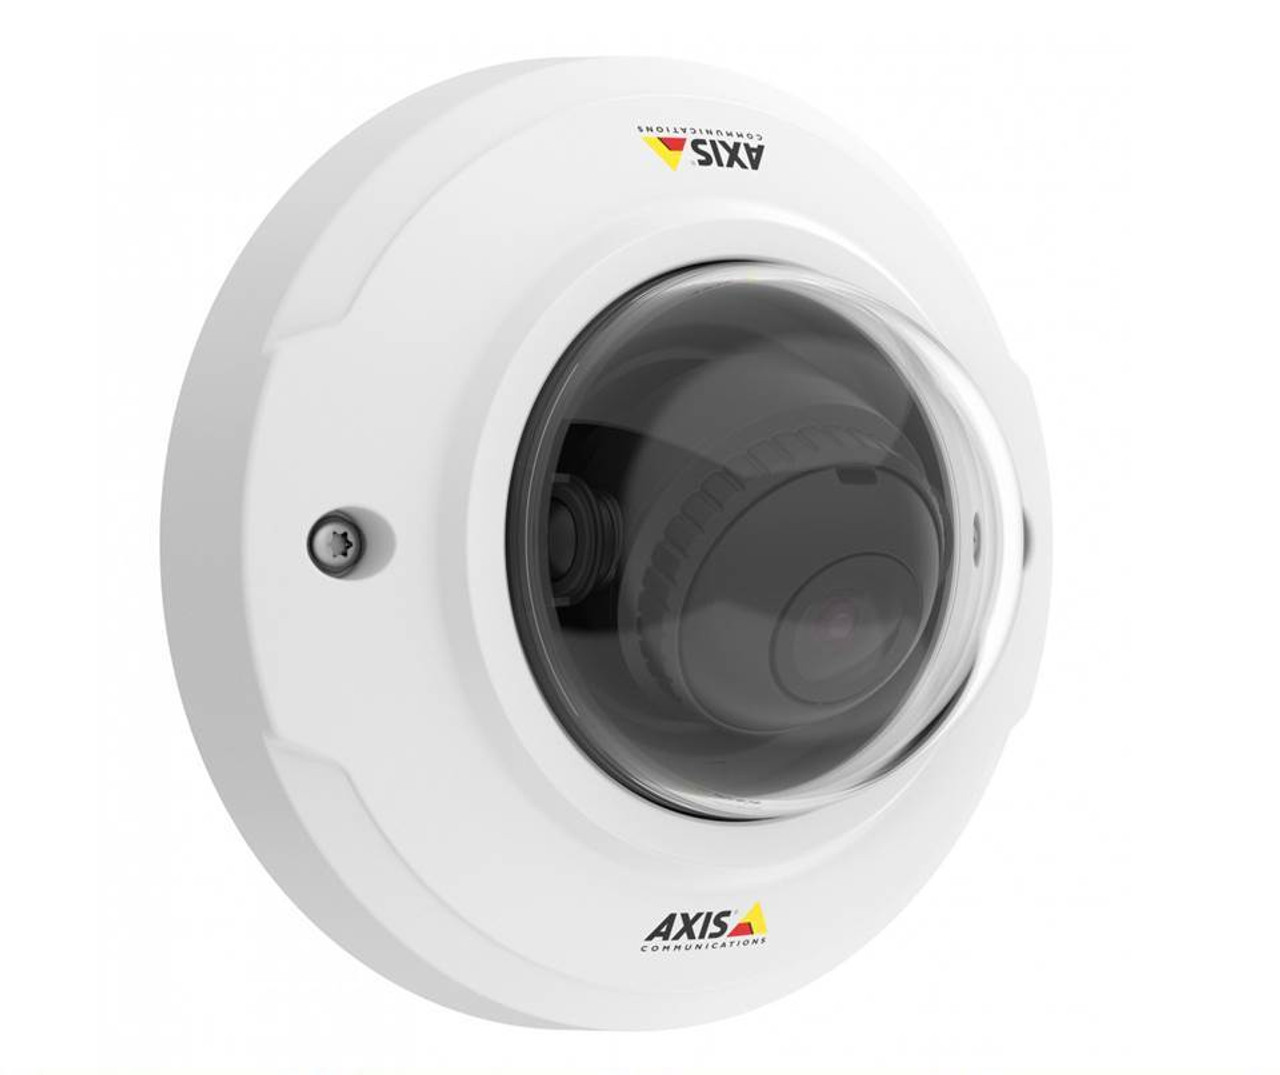 AXIS M3045-WV Wireless Dome PTZ NETWORK CAMERA PART NO.0805-004 NEW IN BOX